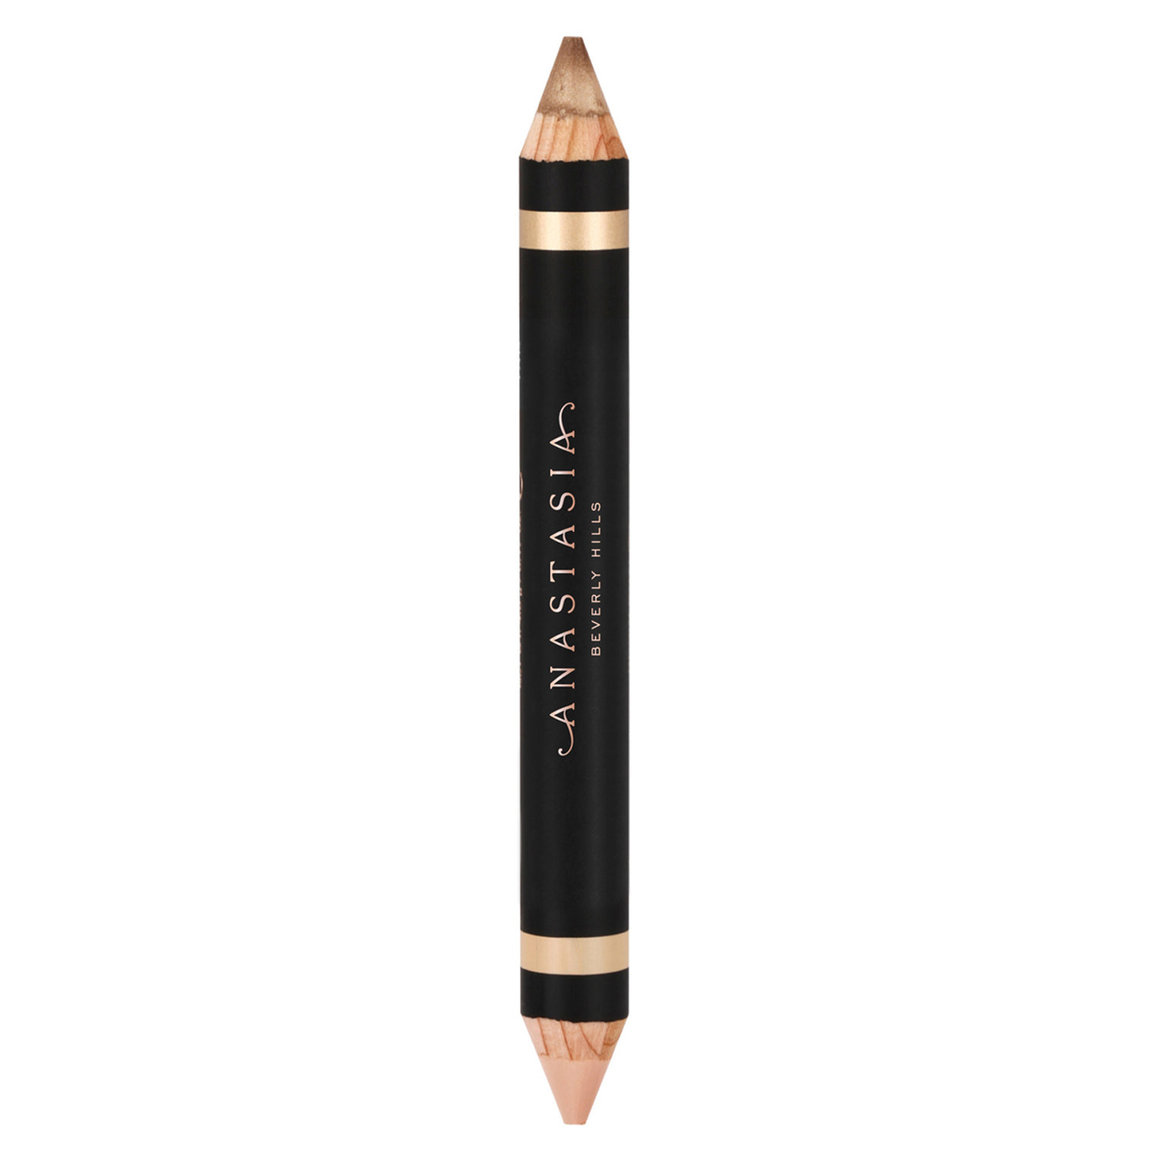 Anastasia Beverly Hills Highlighting Duo Pencil Matte Shell / Lace Shimmer alternative view 1.